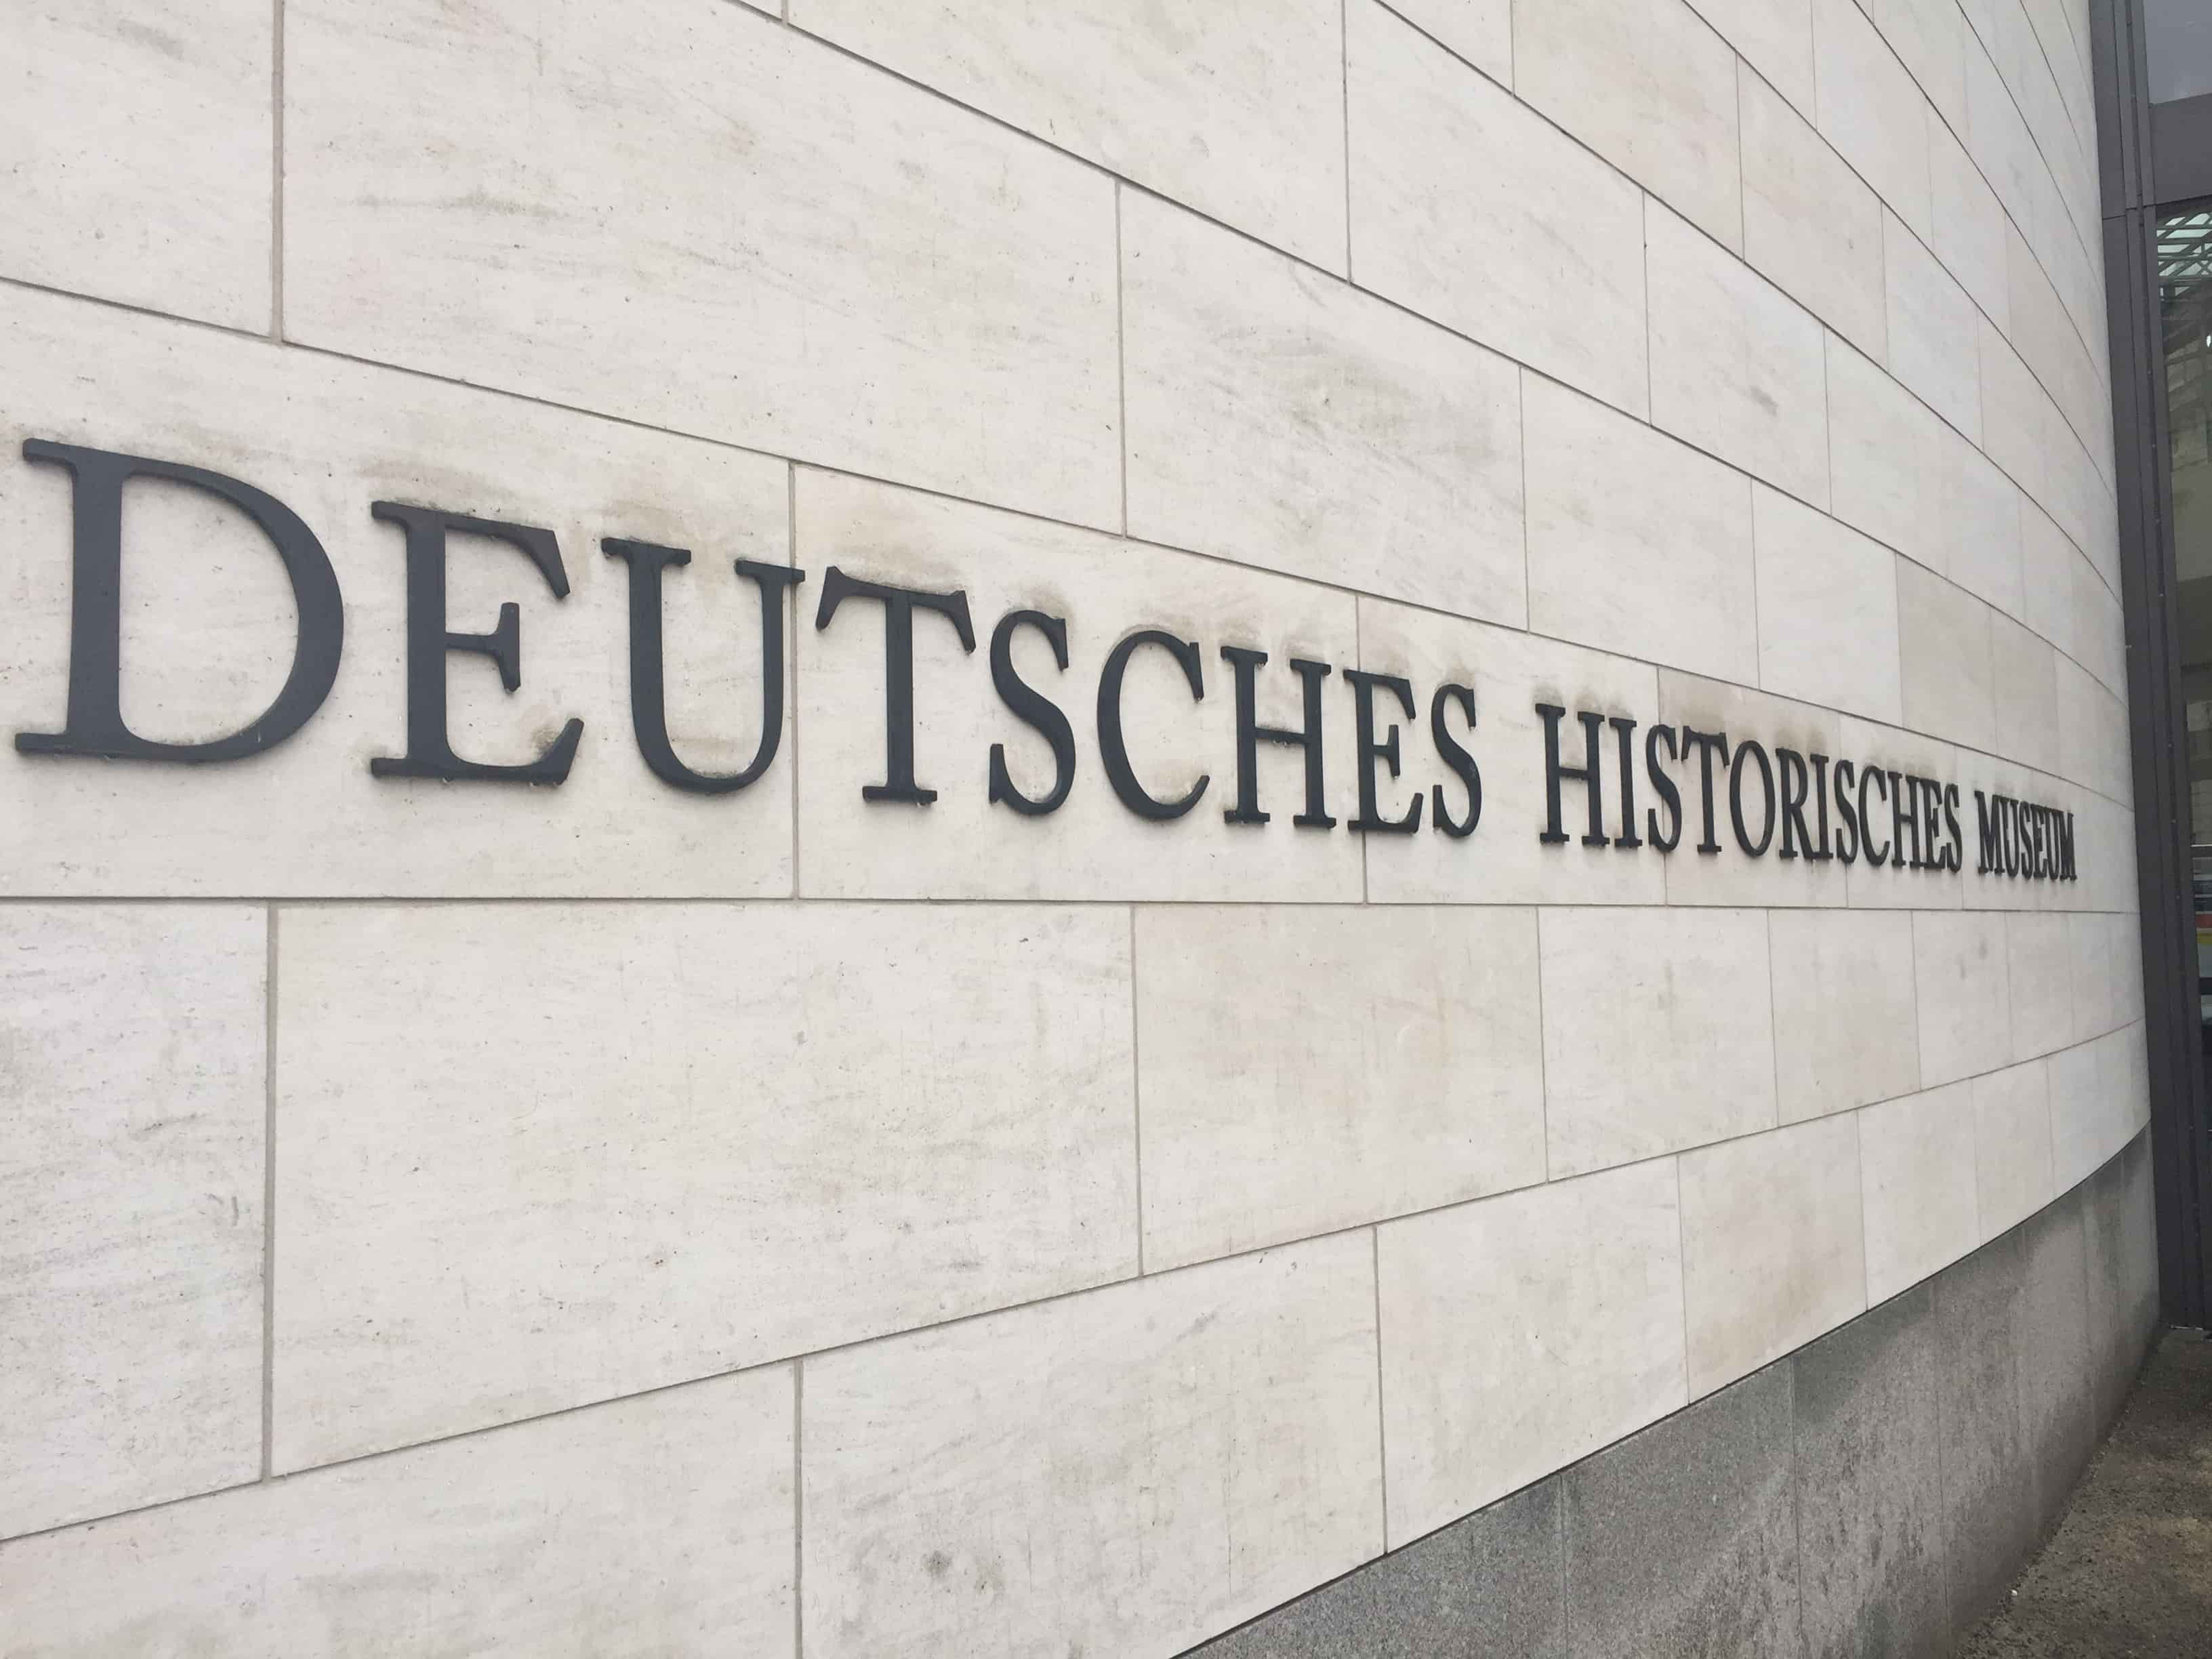 Deutches historiches museum